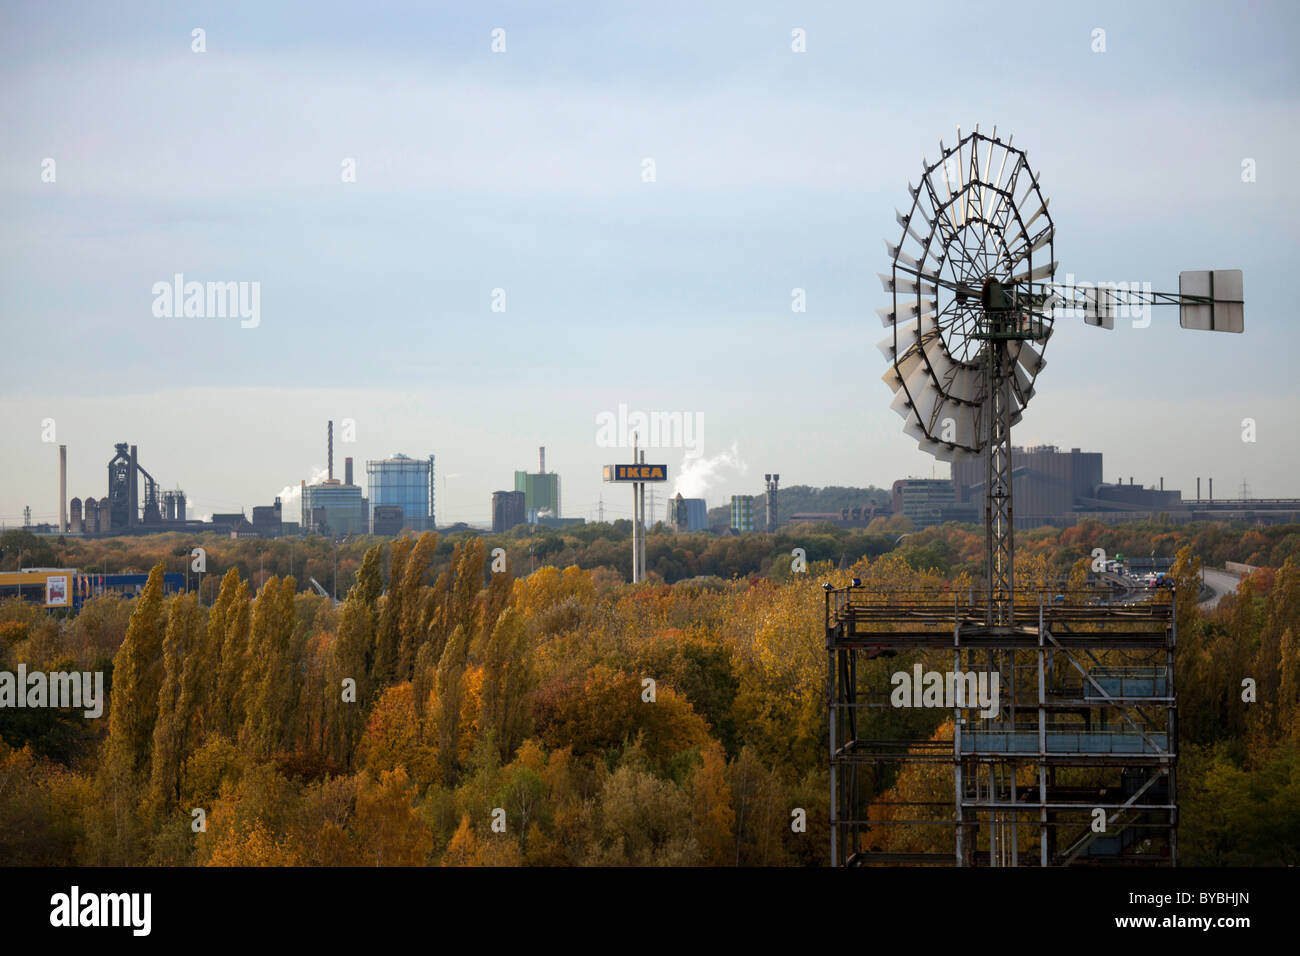 View over a windmill and the Ruhr Area from Duisburg-Nord Landscape Park, Duisburg, Ruhr Area, North Rhine-Westphalia - Stock Image